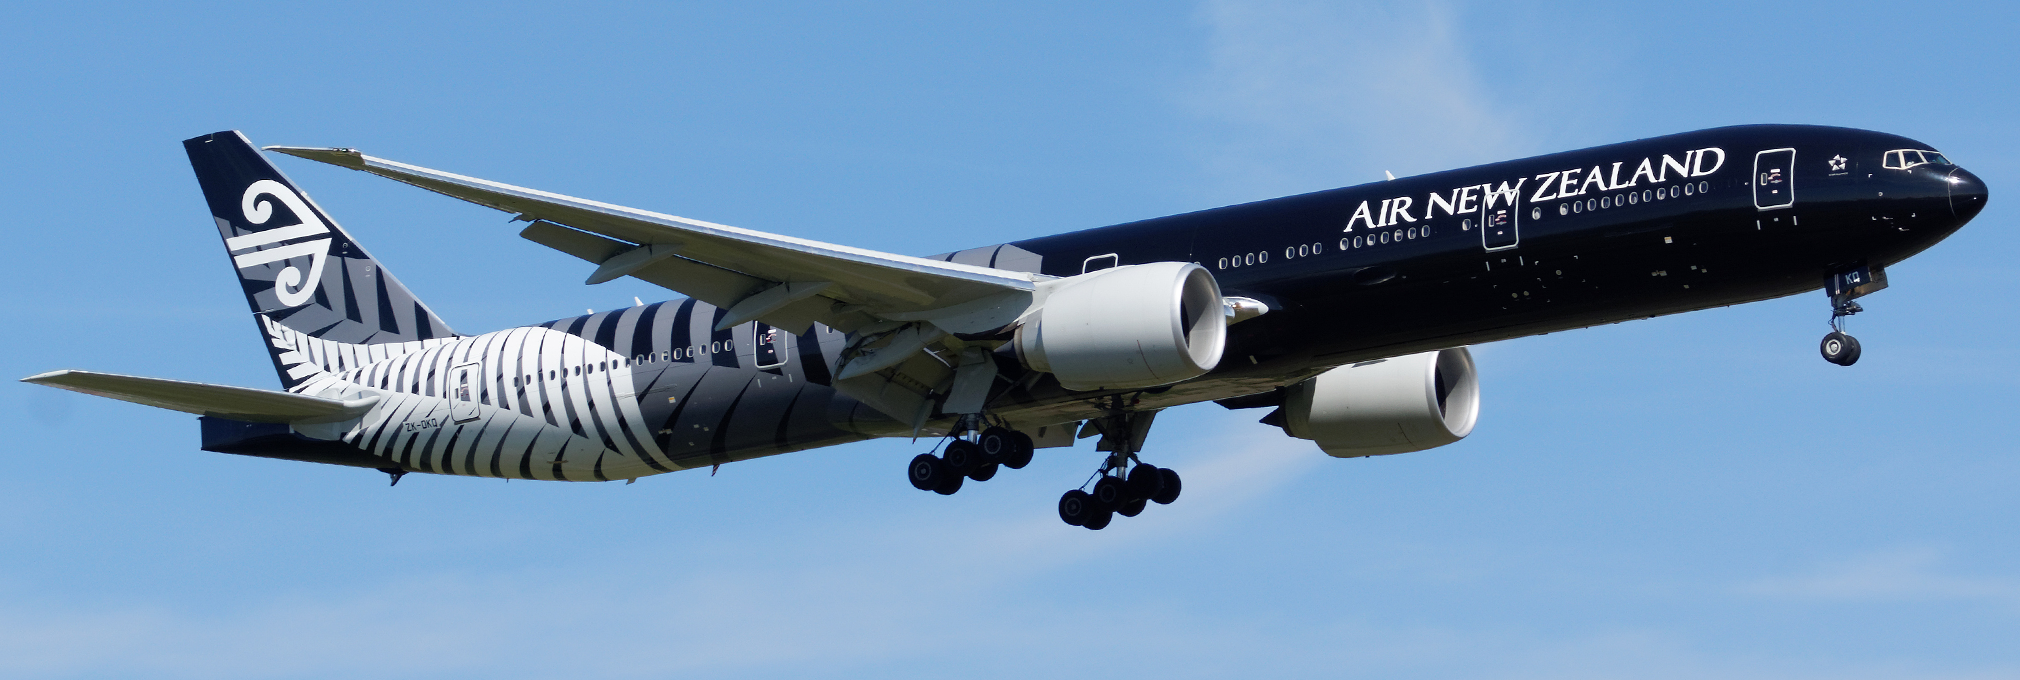 air new zealand - photo #6